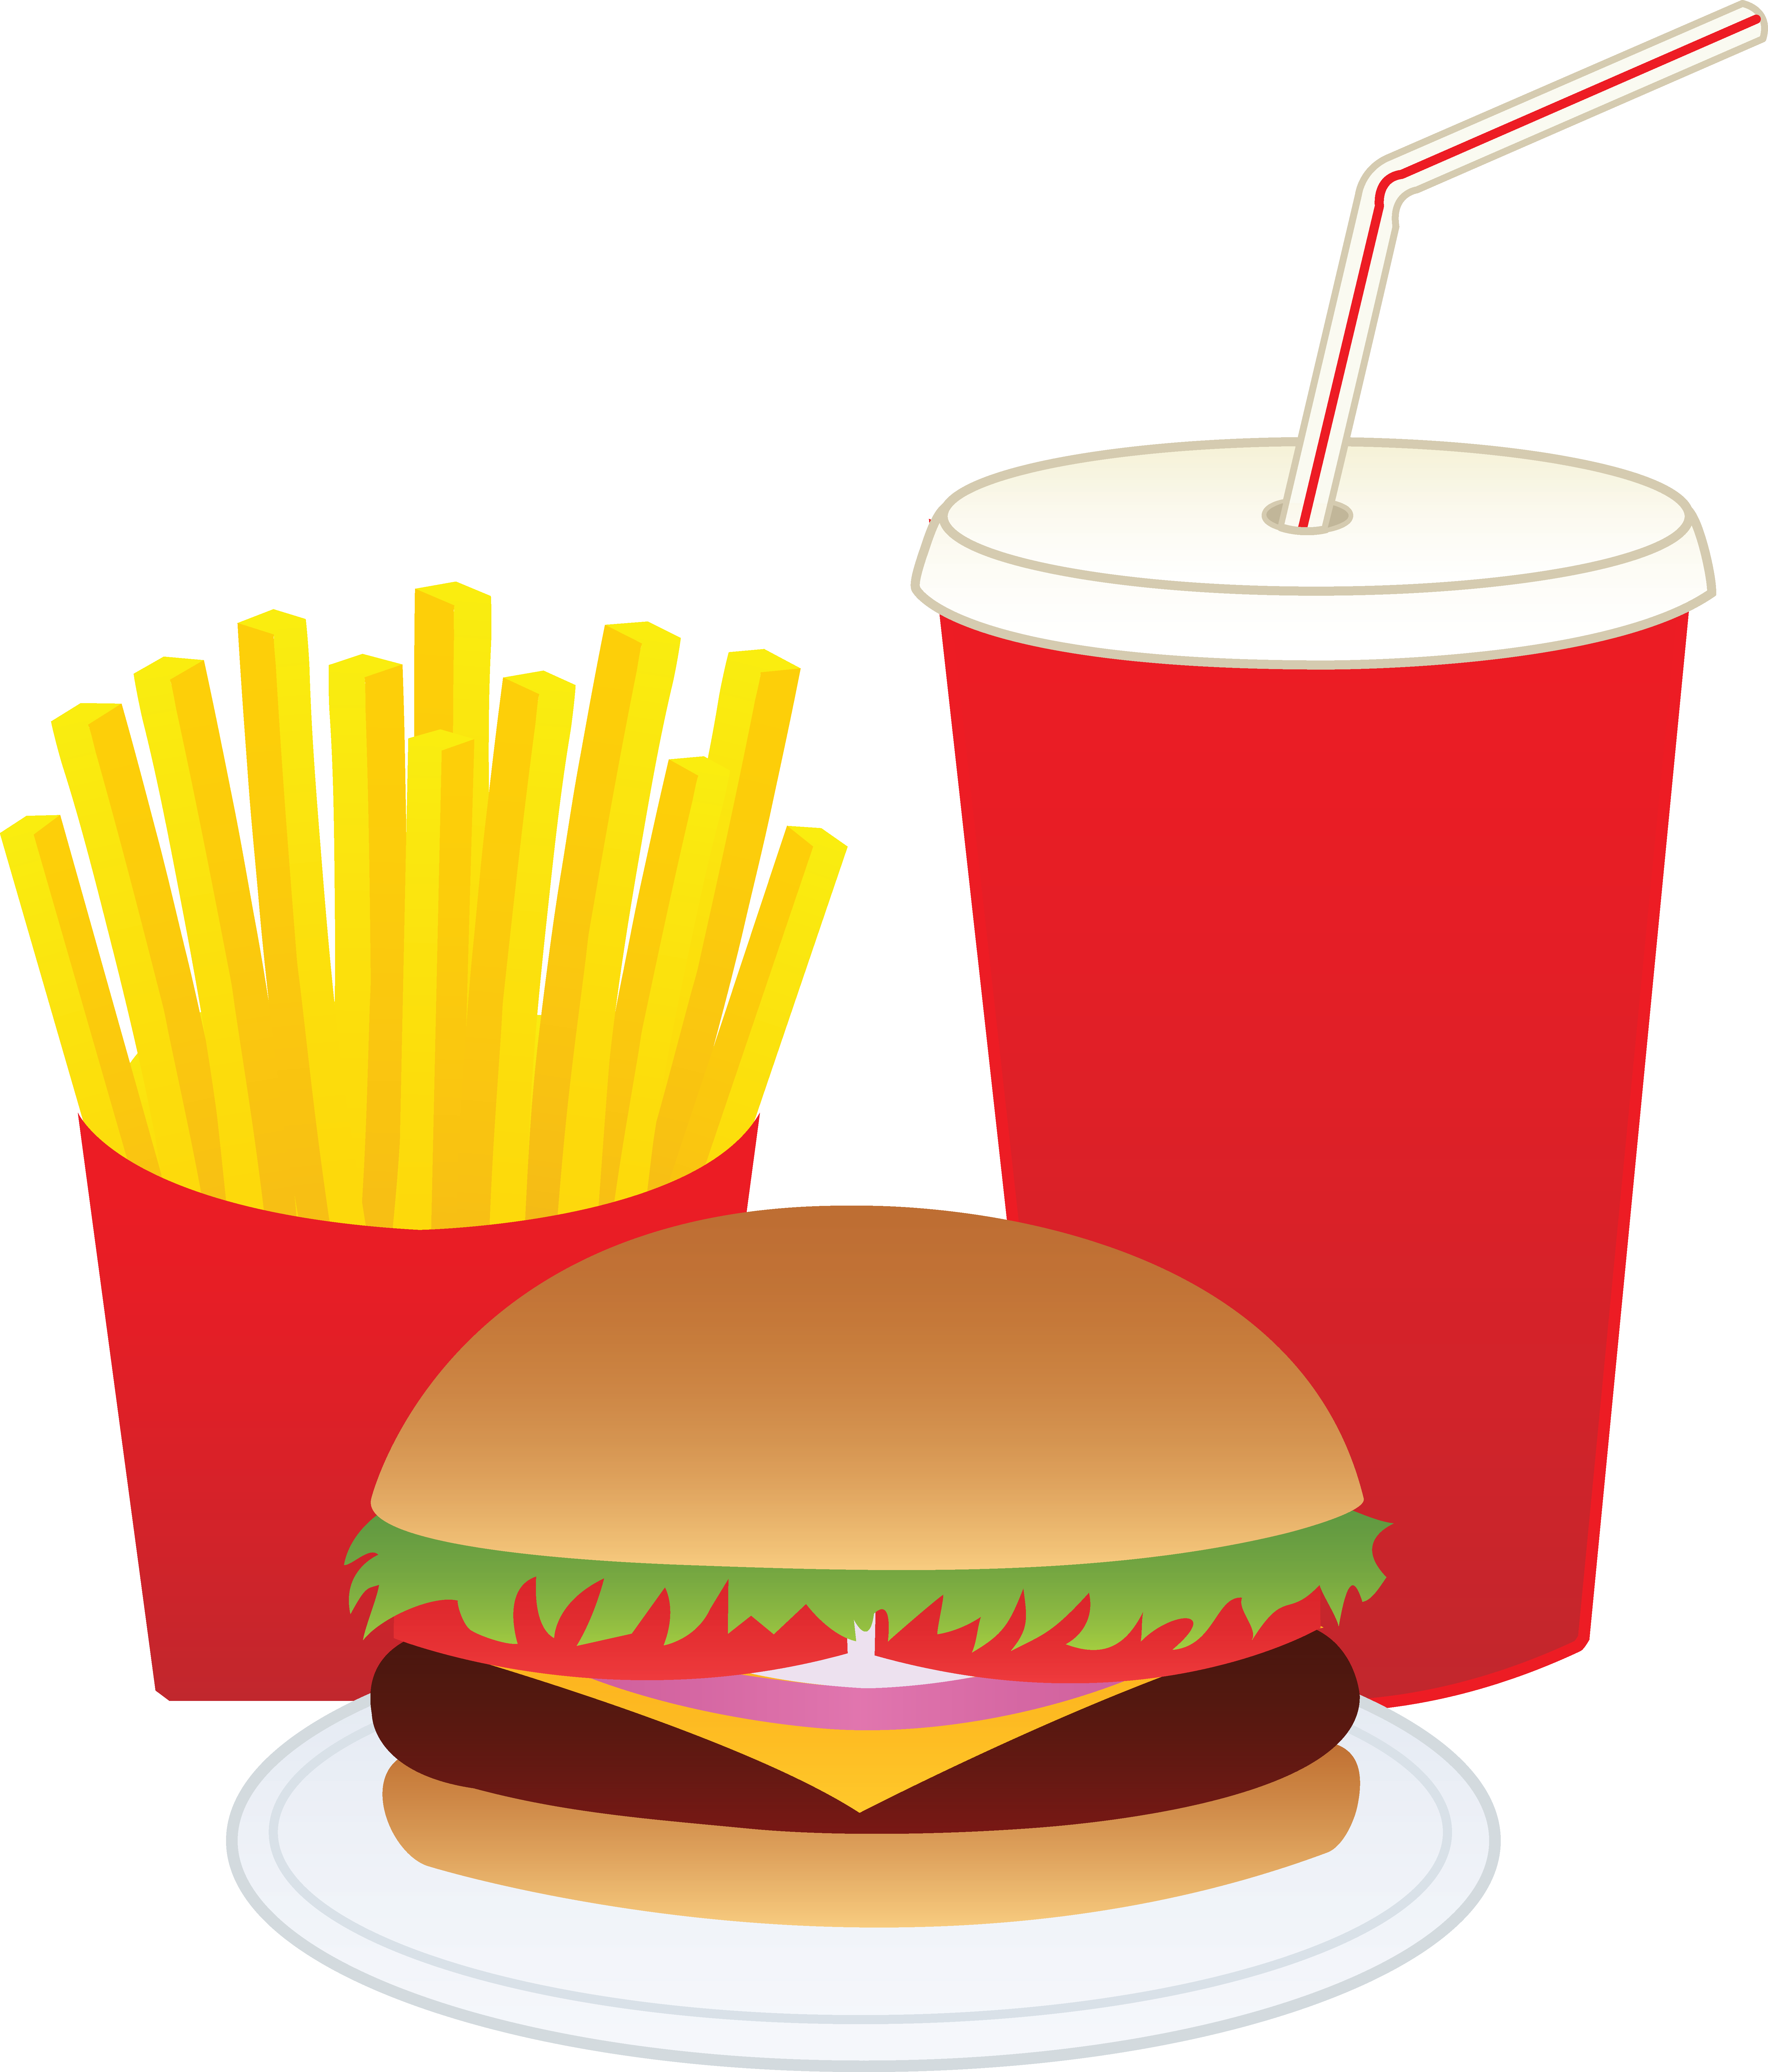 Chips And Soda Png Free Chips And Sodapng Transparent Images